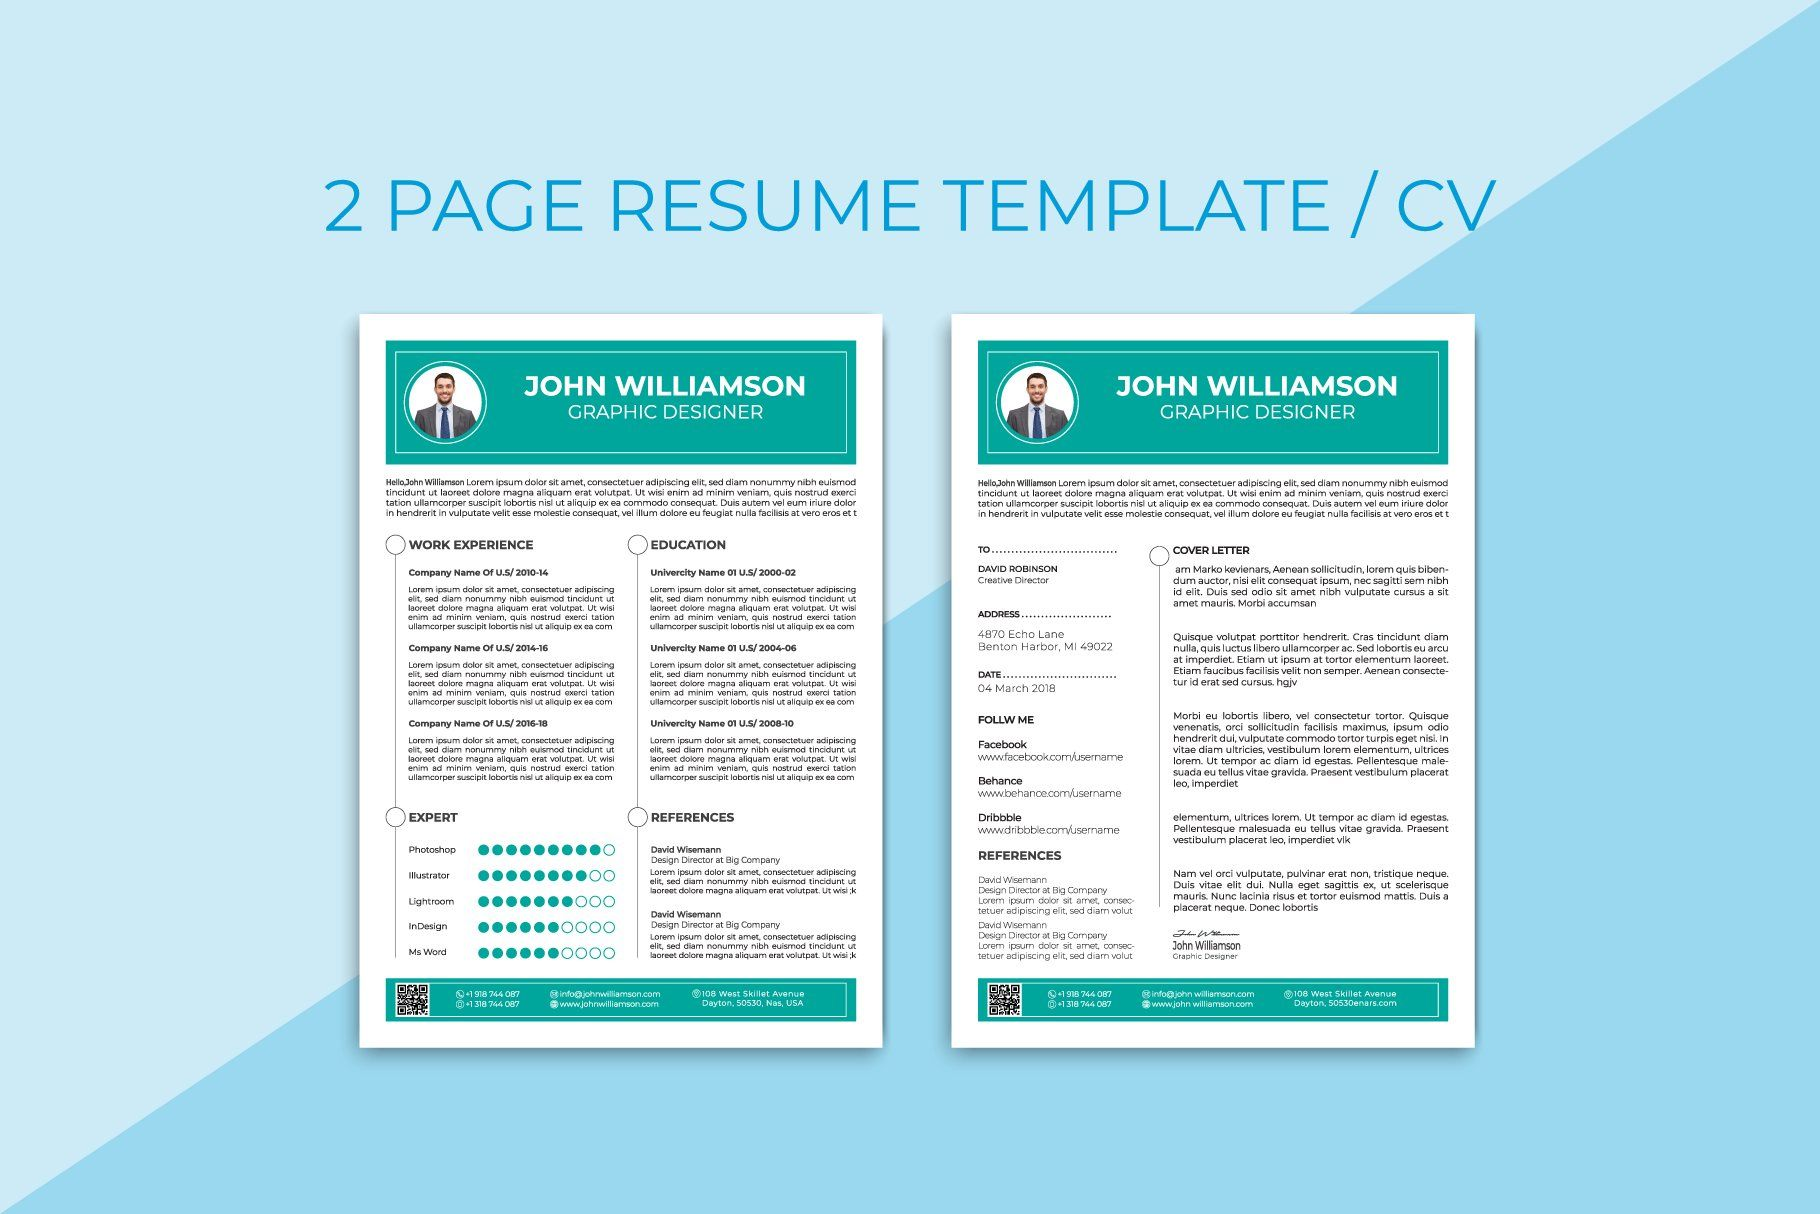 Resume Template Cv Resume Template Resume Templates Clean Resume Template